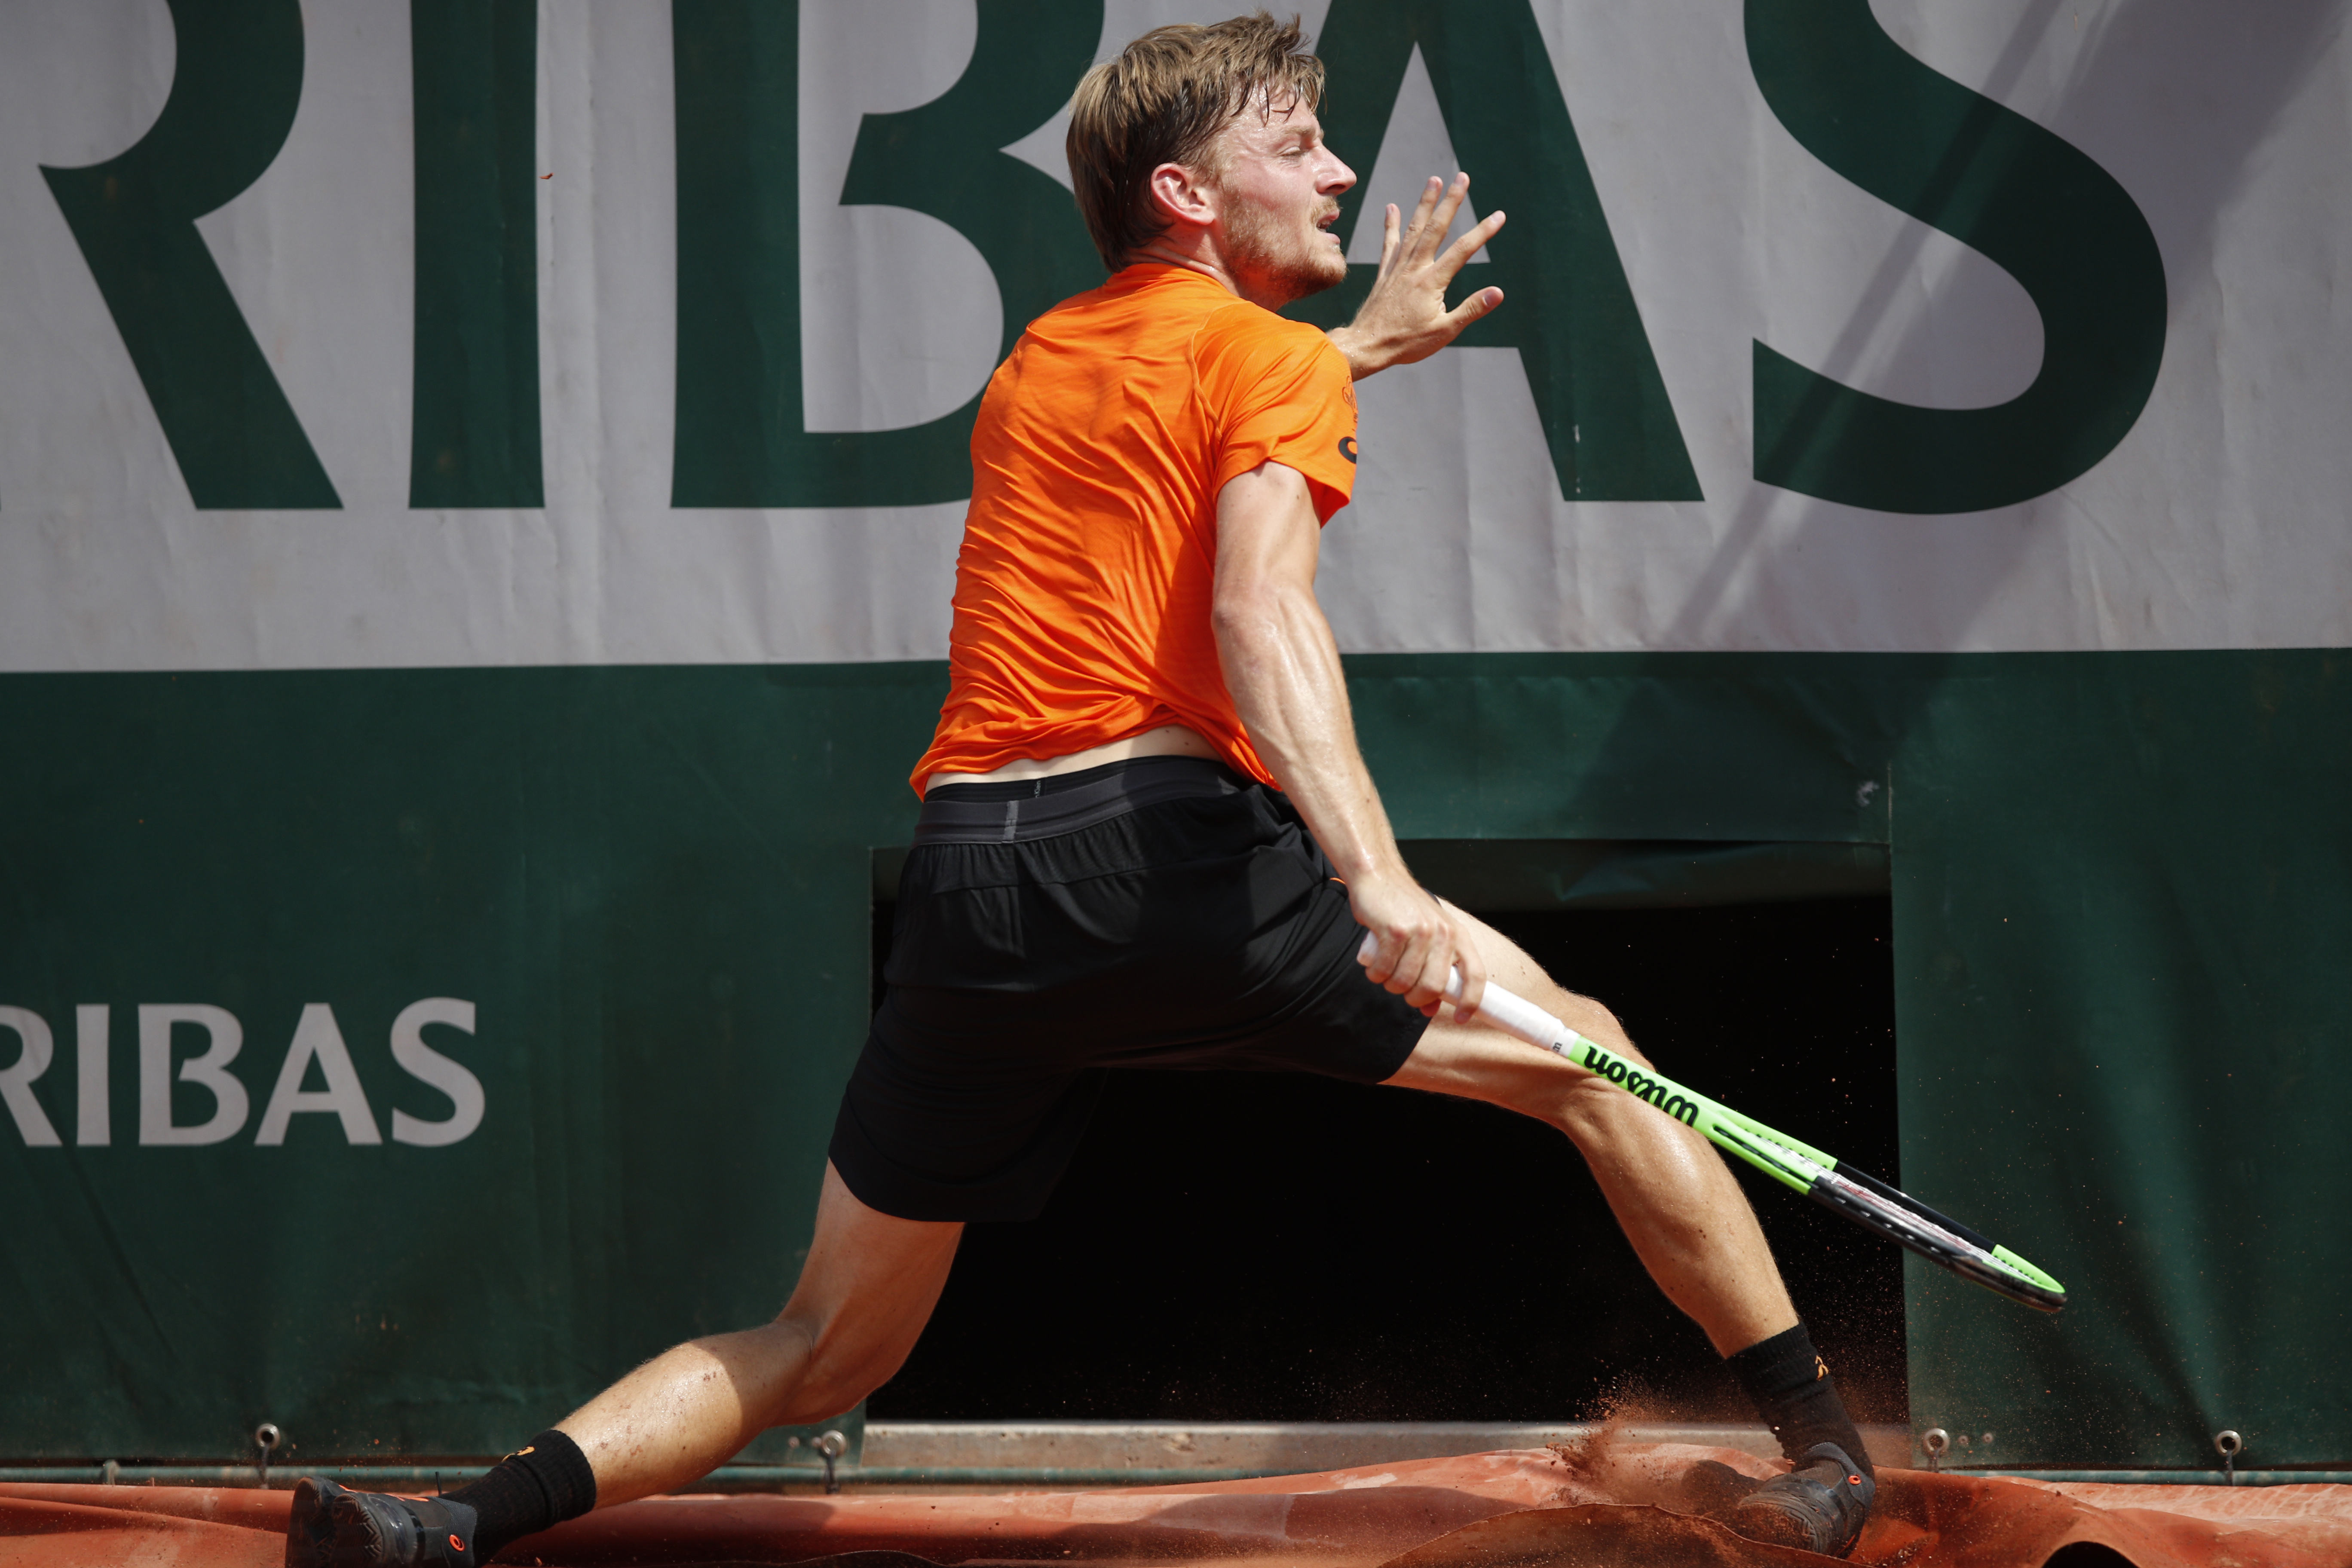 Belgium's David Goffin twists his right ankle in his match against Argentina's Horacio Zeballos during their third round match of the French Open tennis tournament at the Roland Garros stadium, in Paris, France. Friday, June 2, 2017. Goffin's injury force